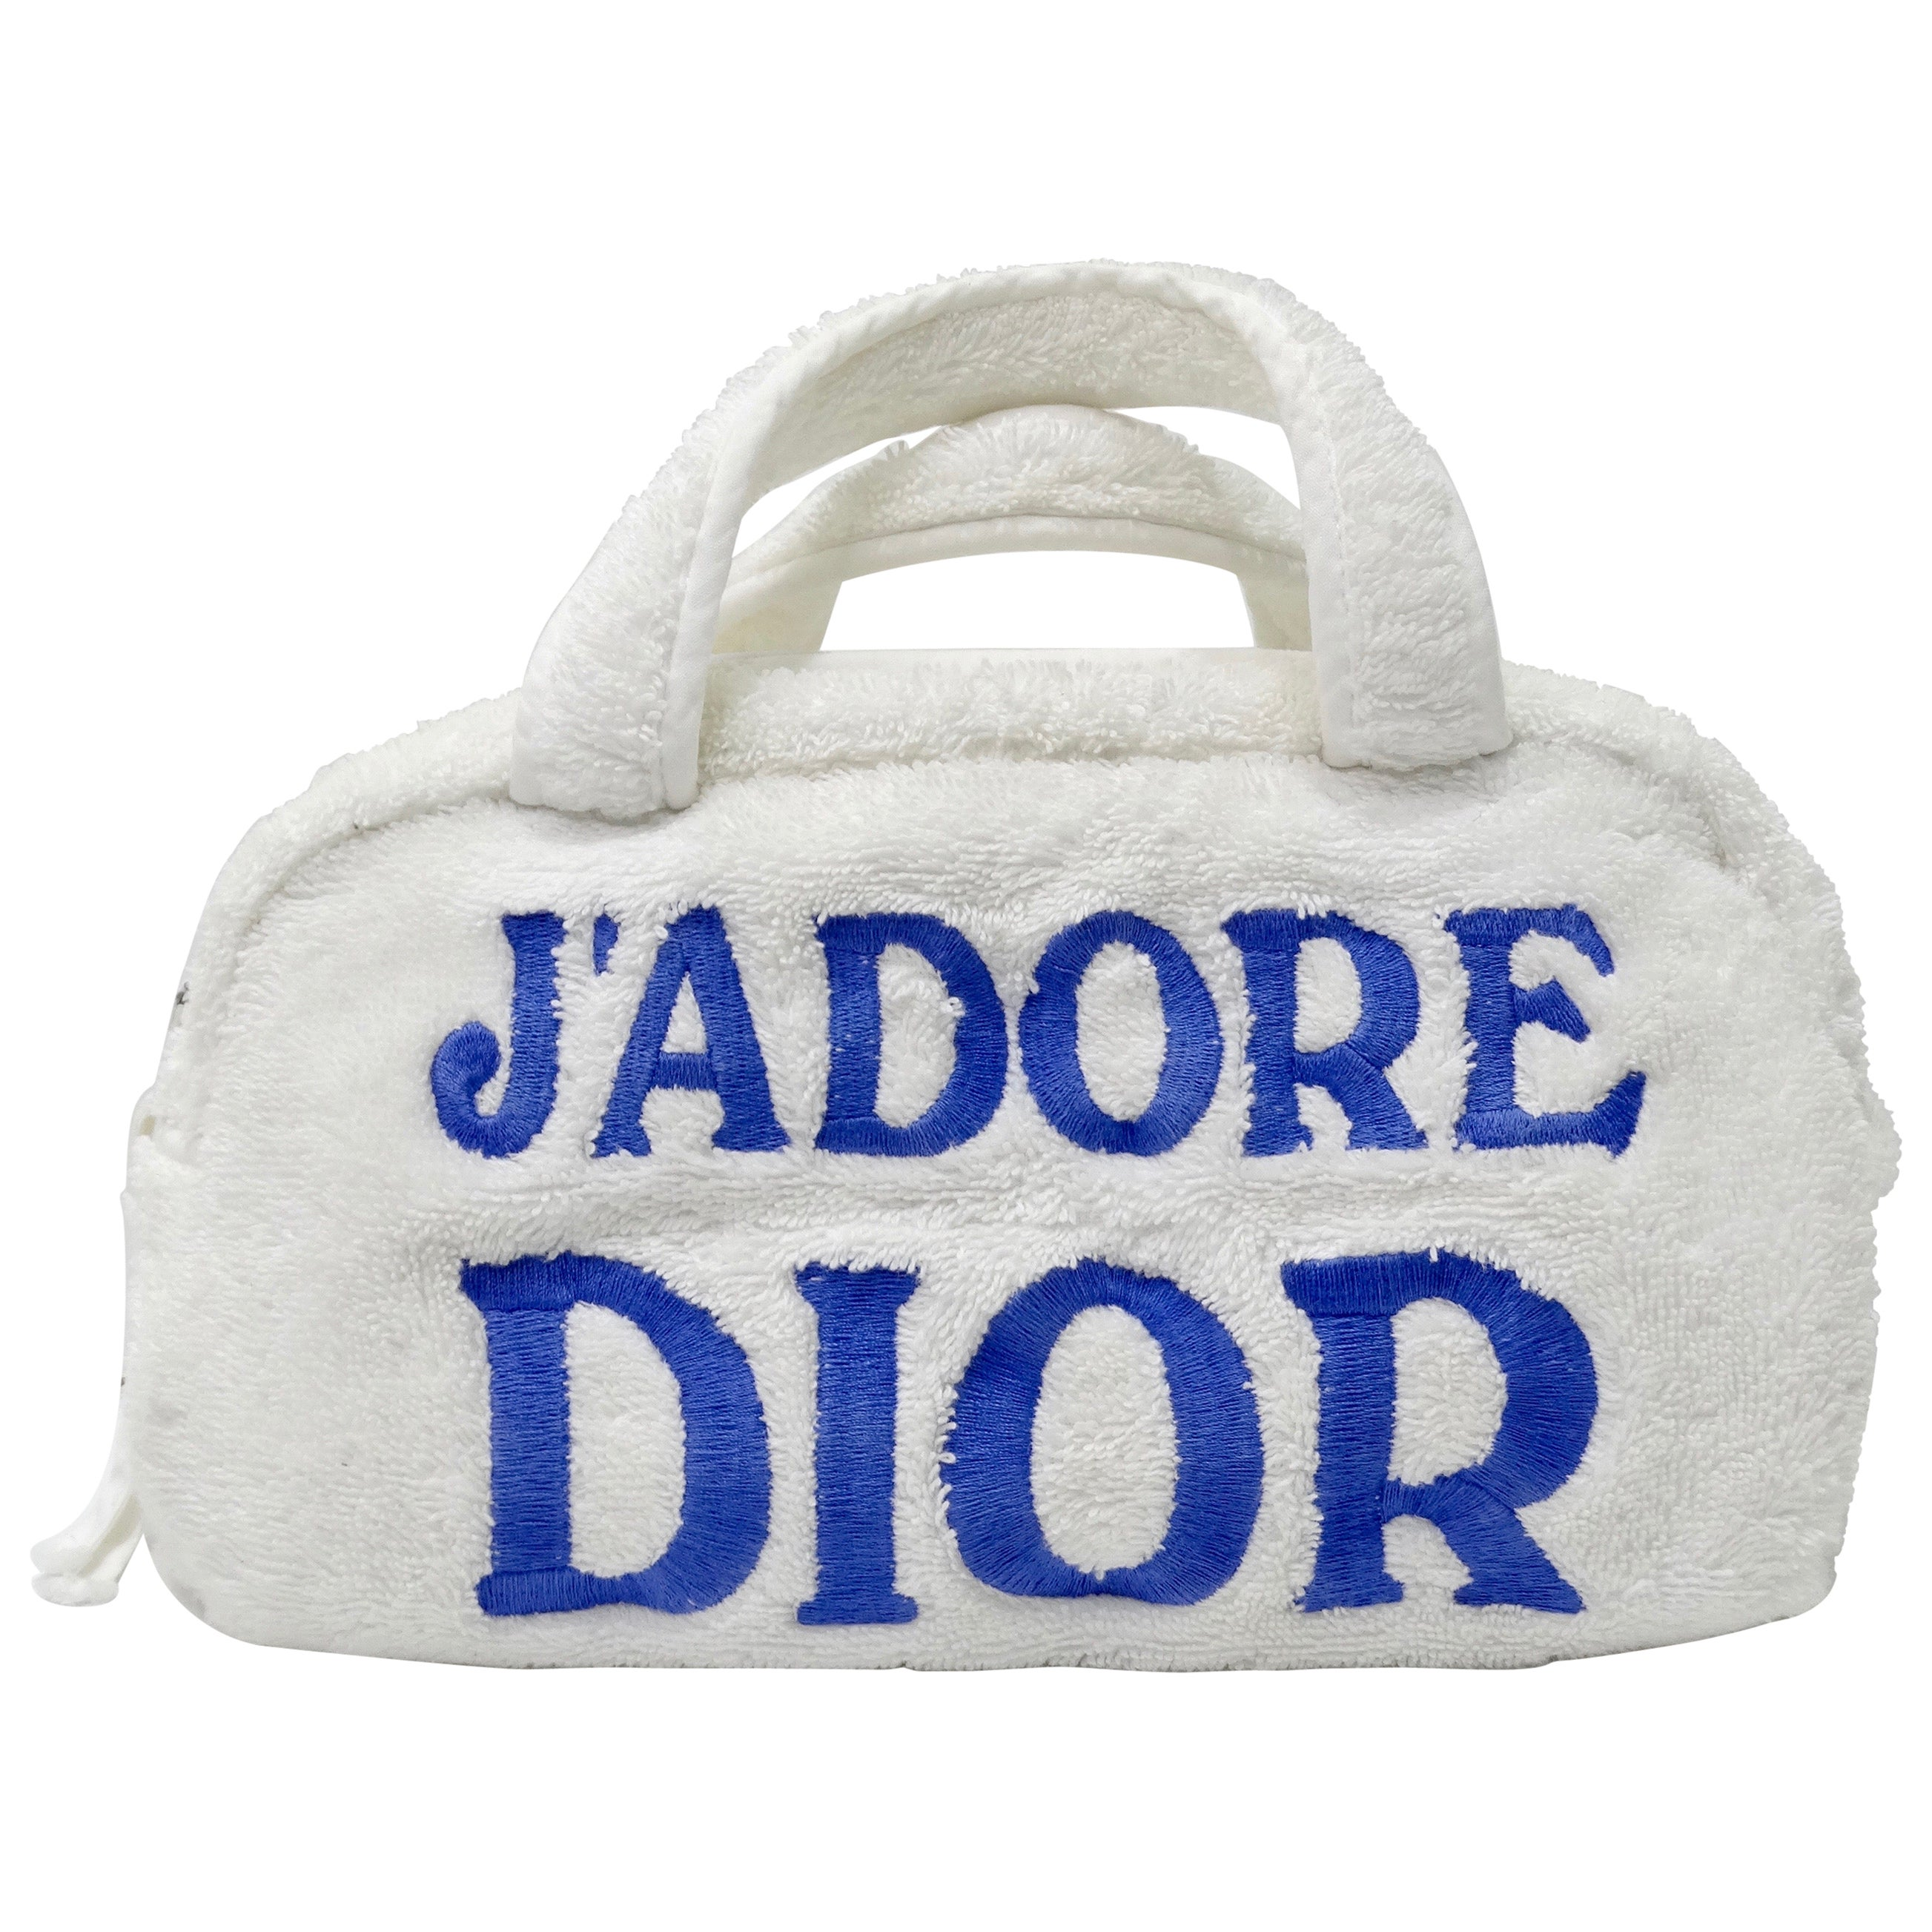 Christian Dior 'J'adore Dior' Terry Cloth Handbag